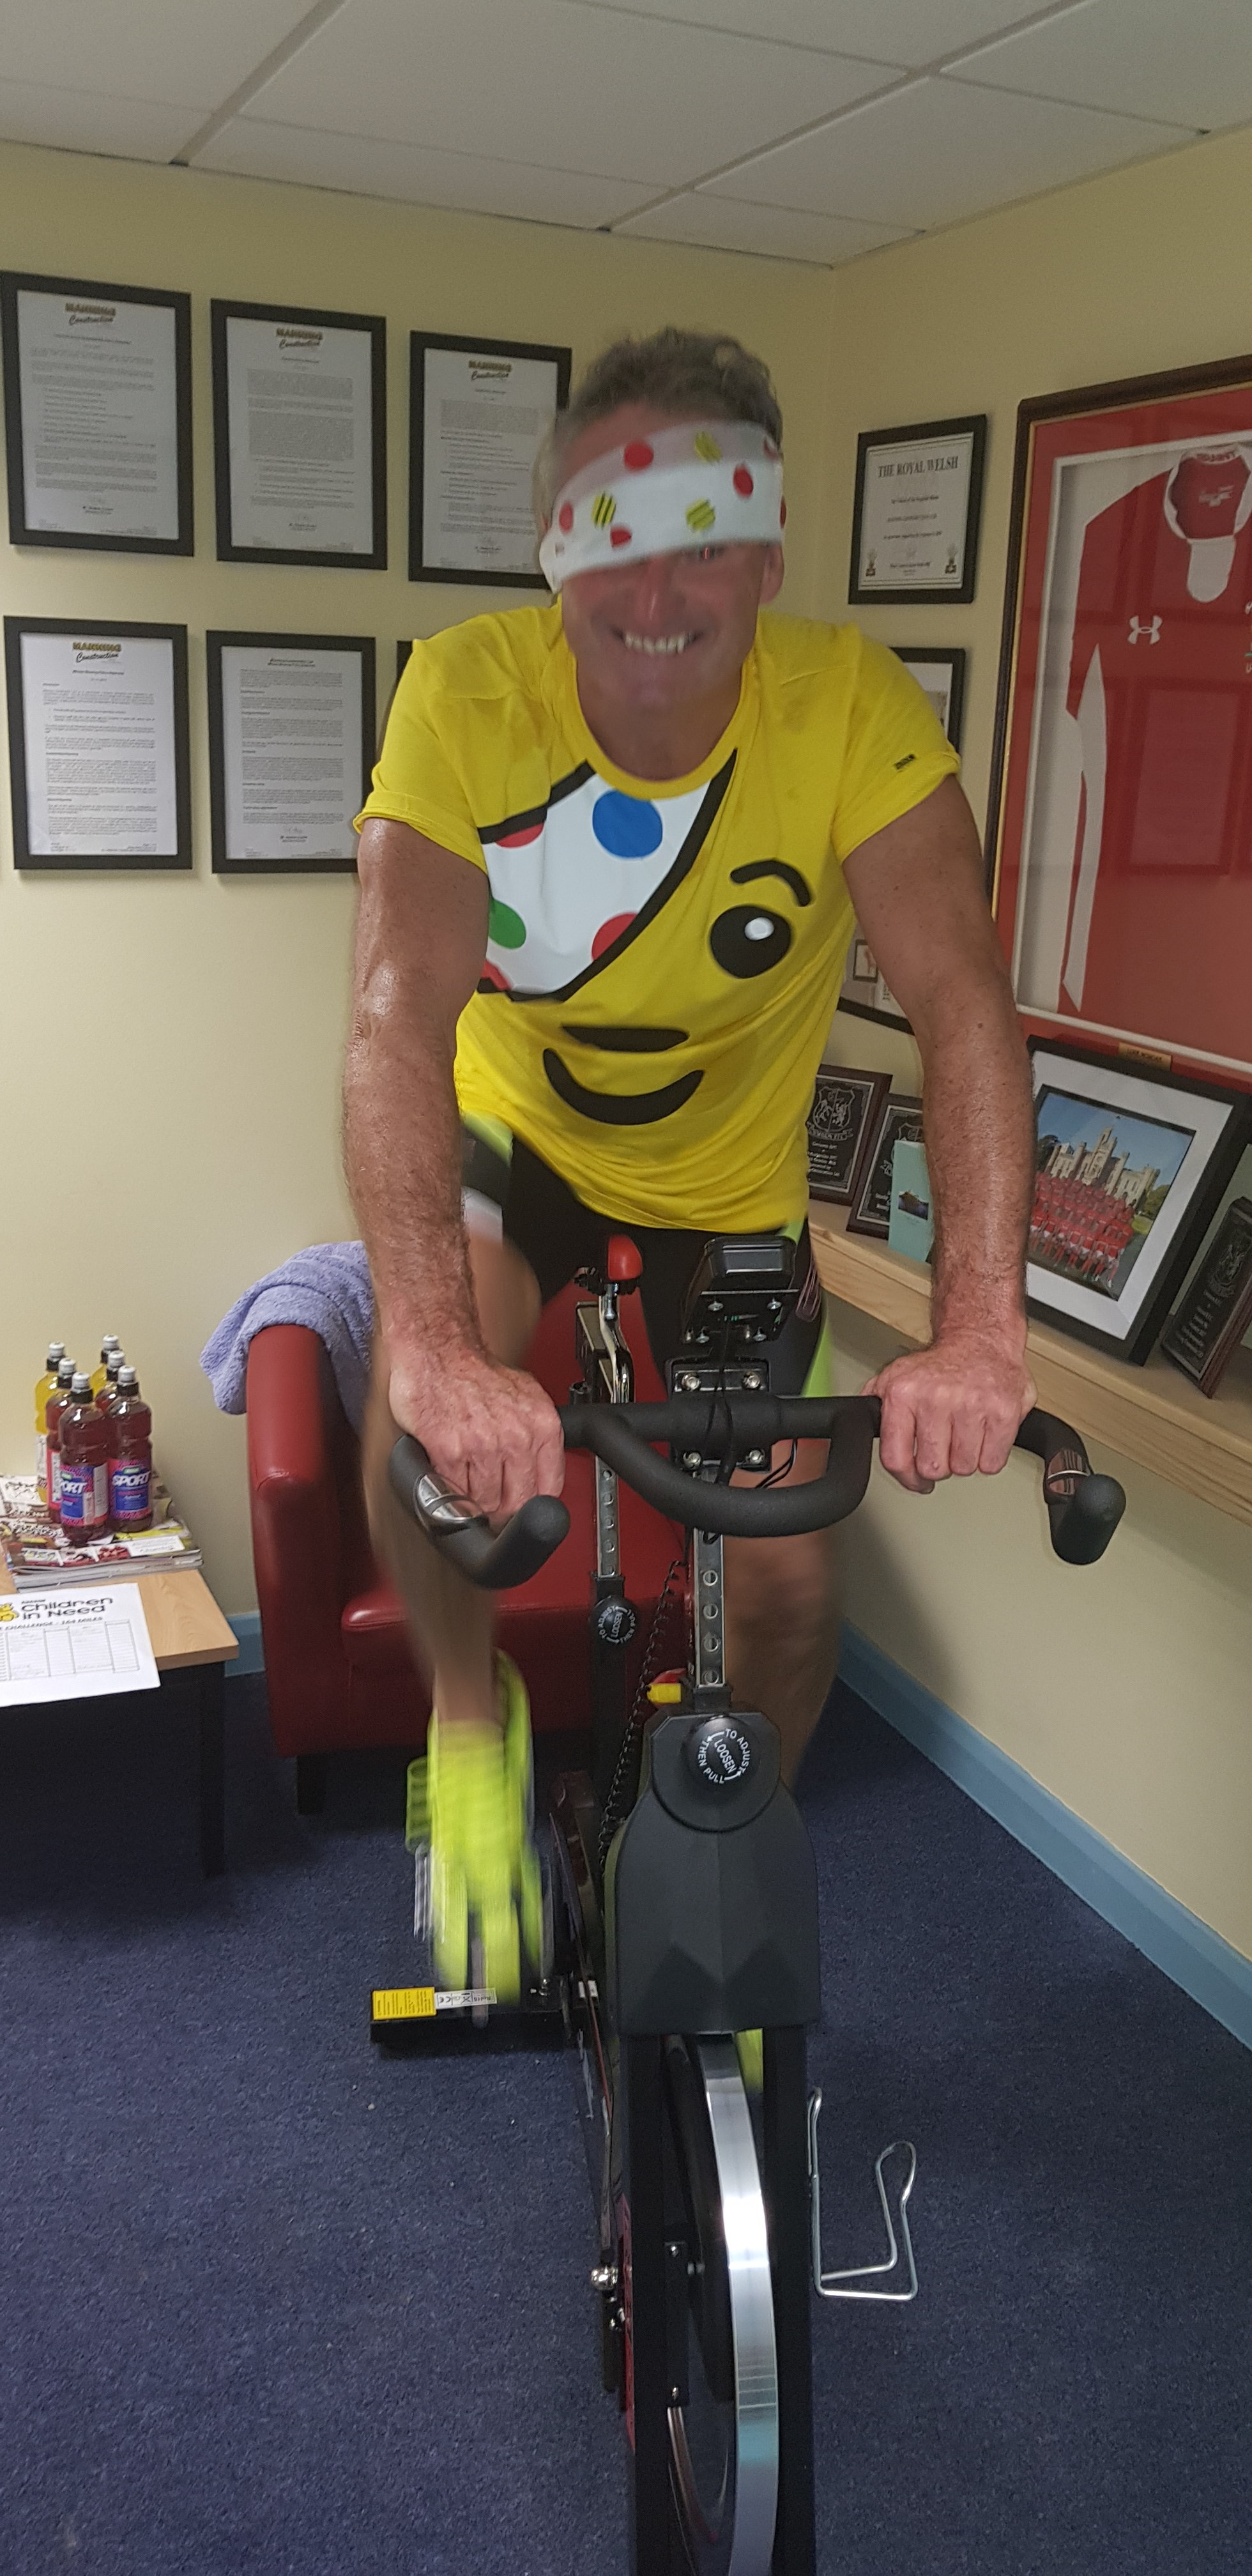 Children in Need Rickshaw Challenge